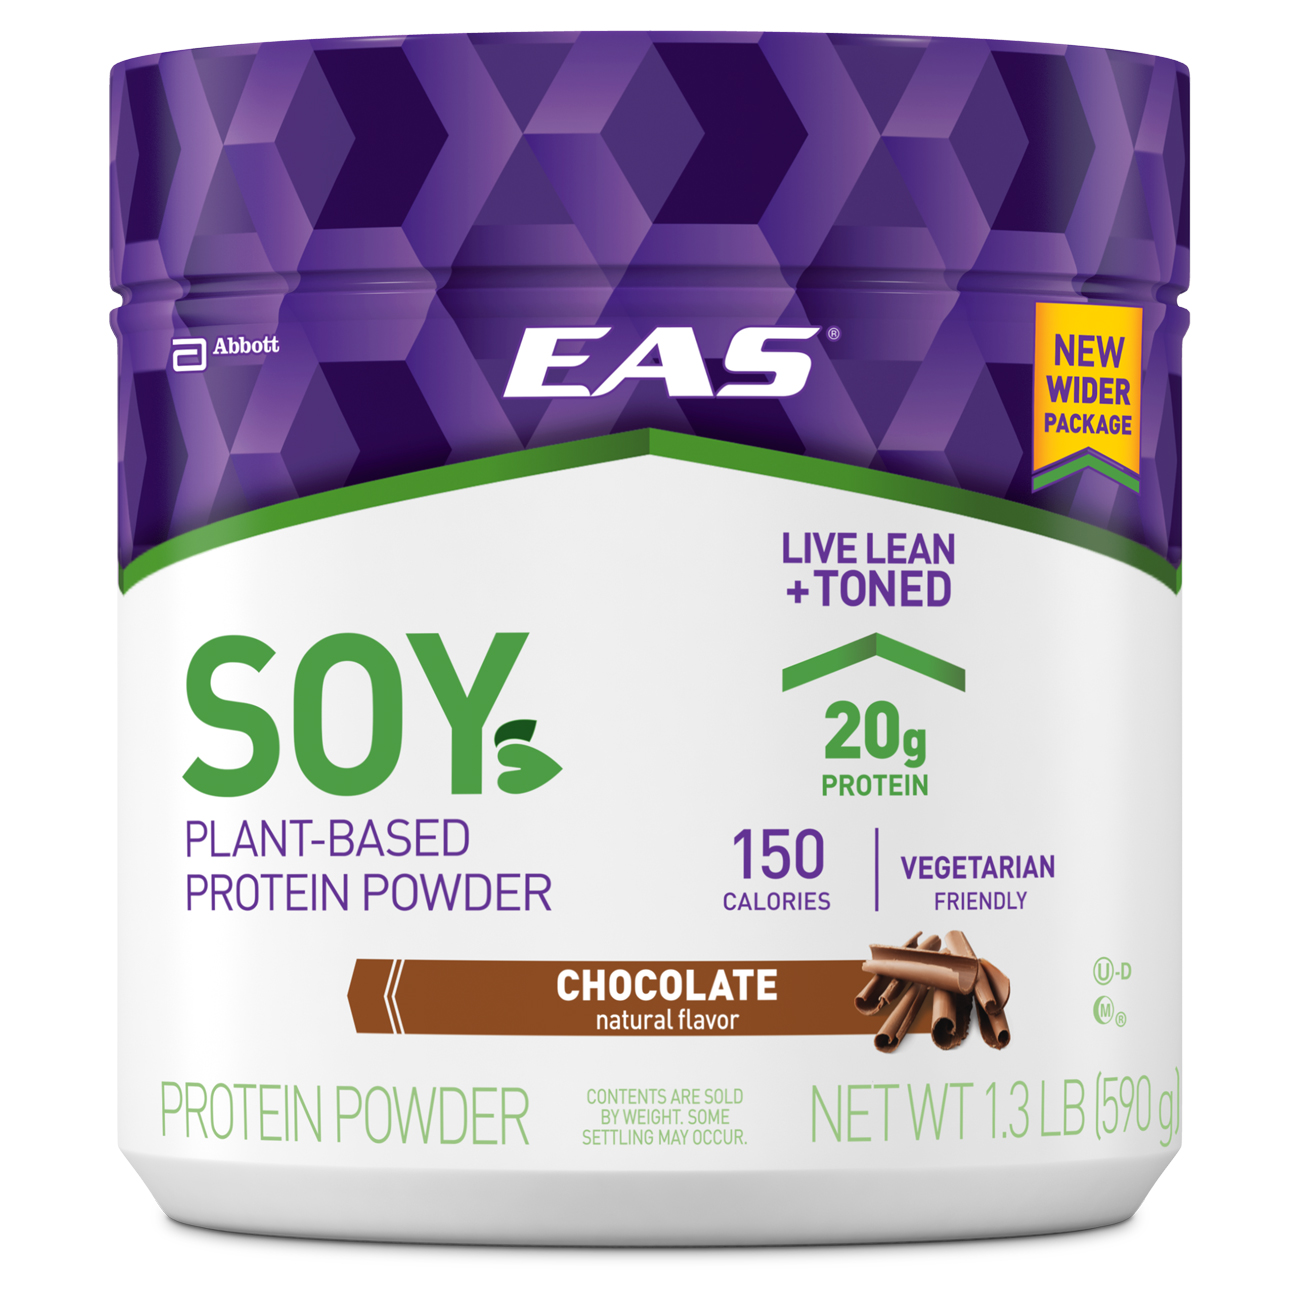 Eas Soy Protein Powder, Chocolate, 1.3 Lb, 14 Servings